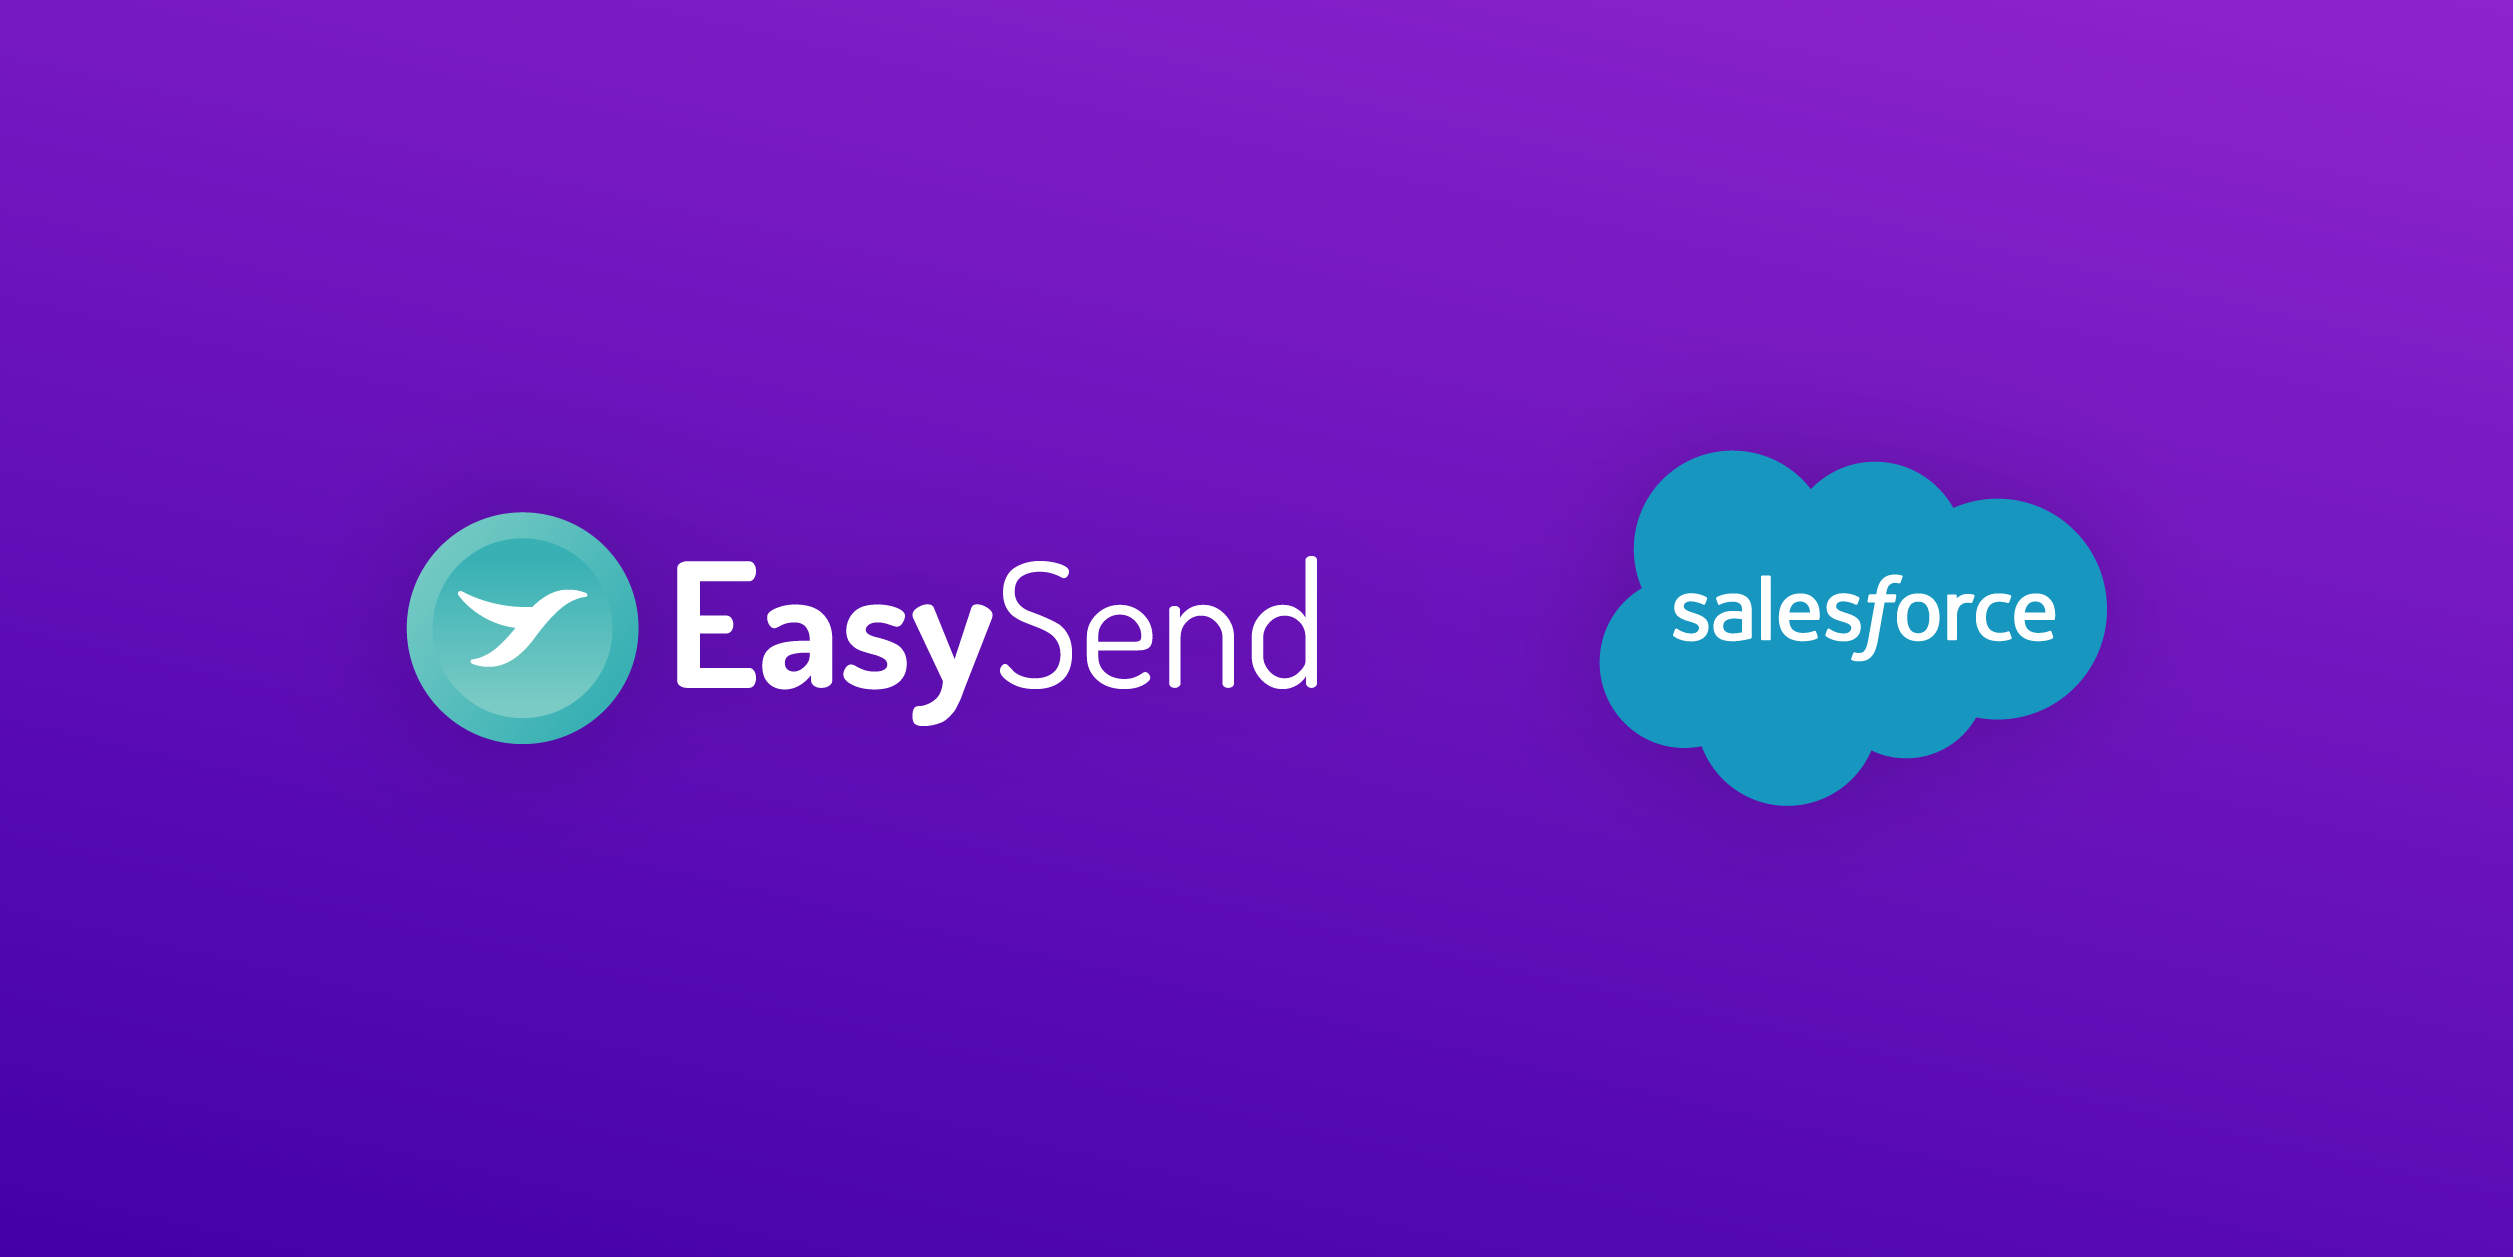 EasySend Raises $16M to Enable Insurance Companies and Financial Institutions to Build a No-Code Digital Future